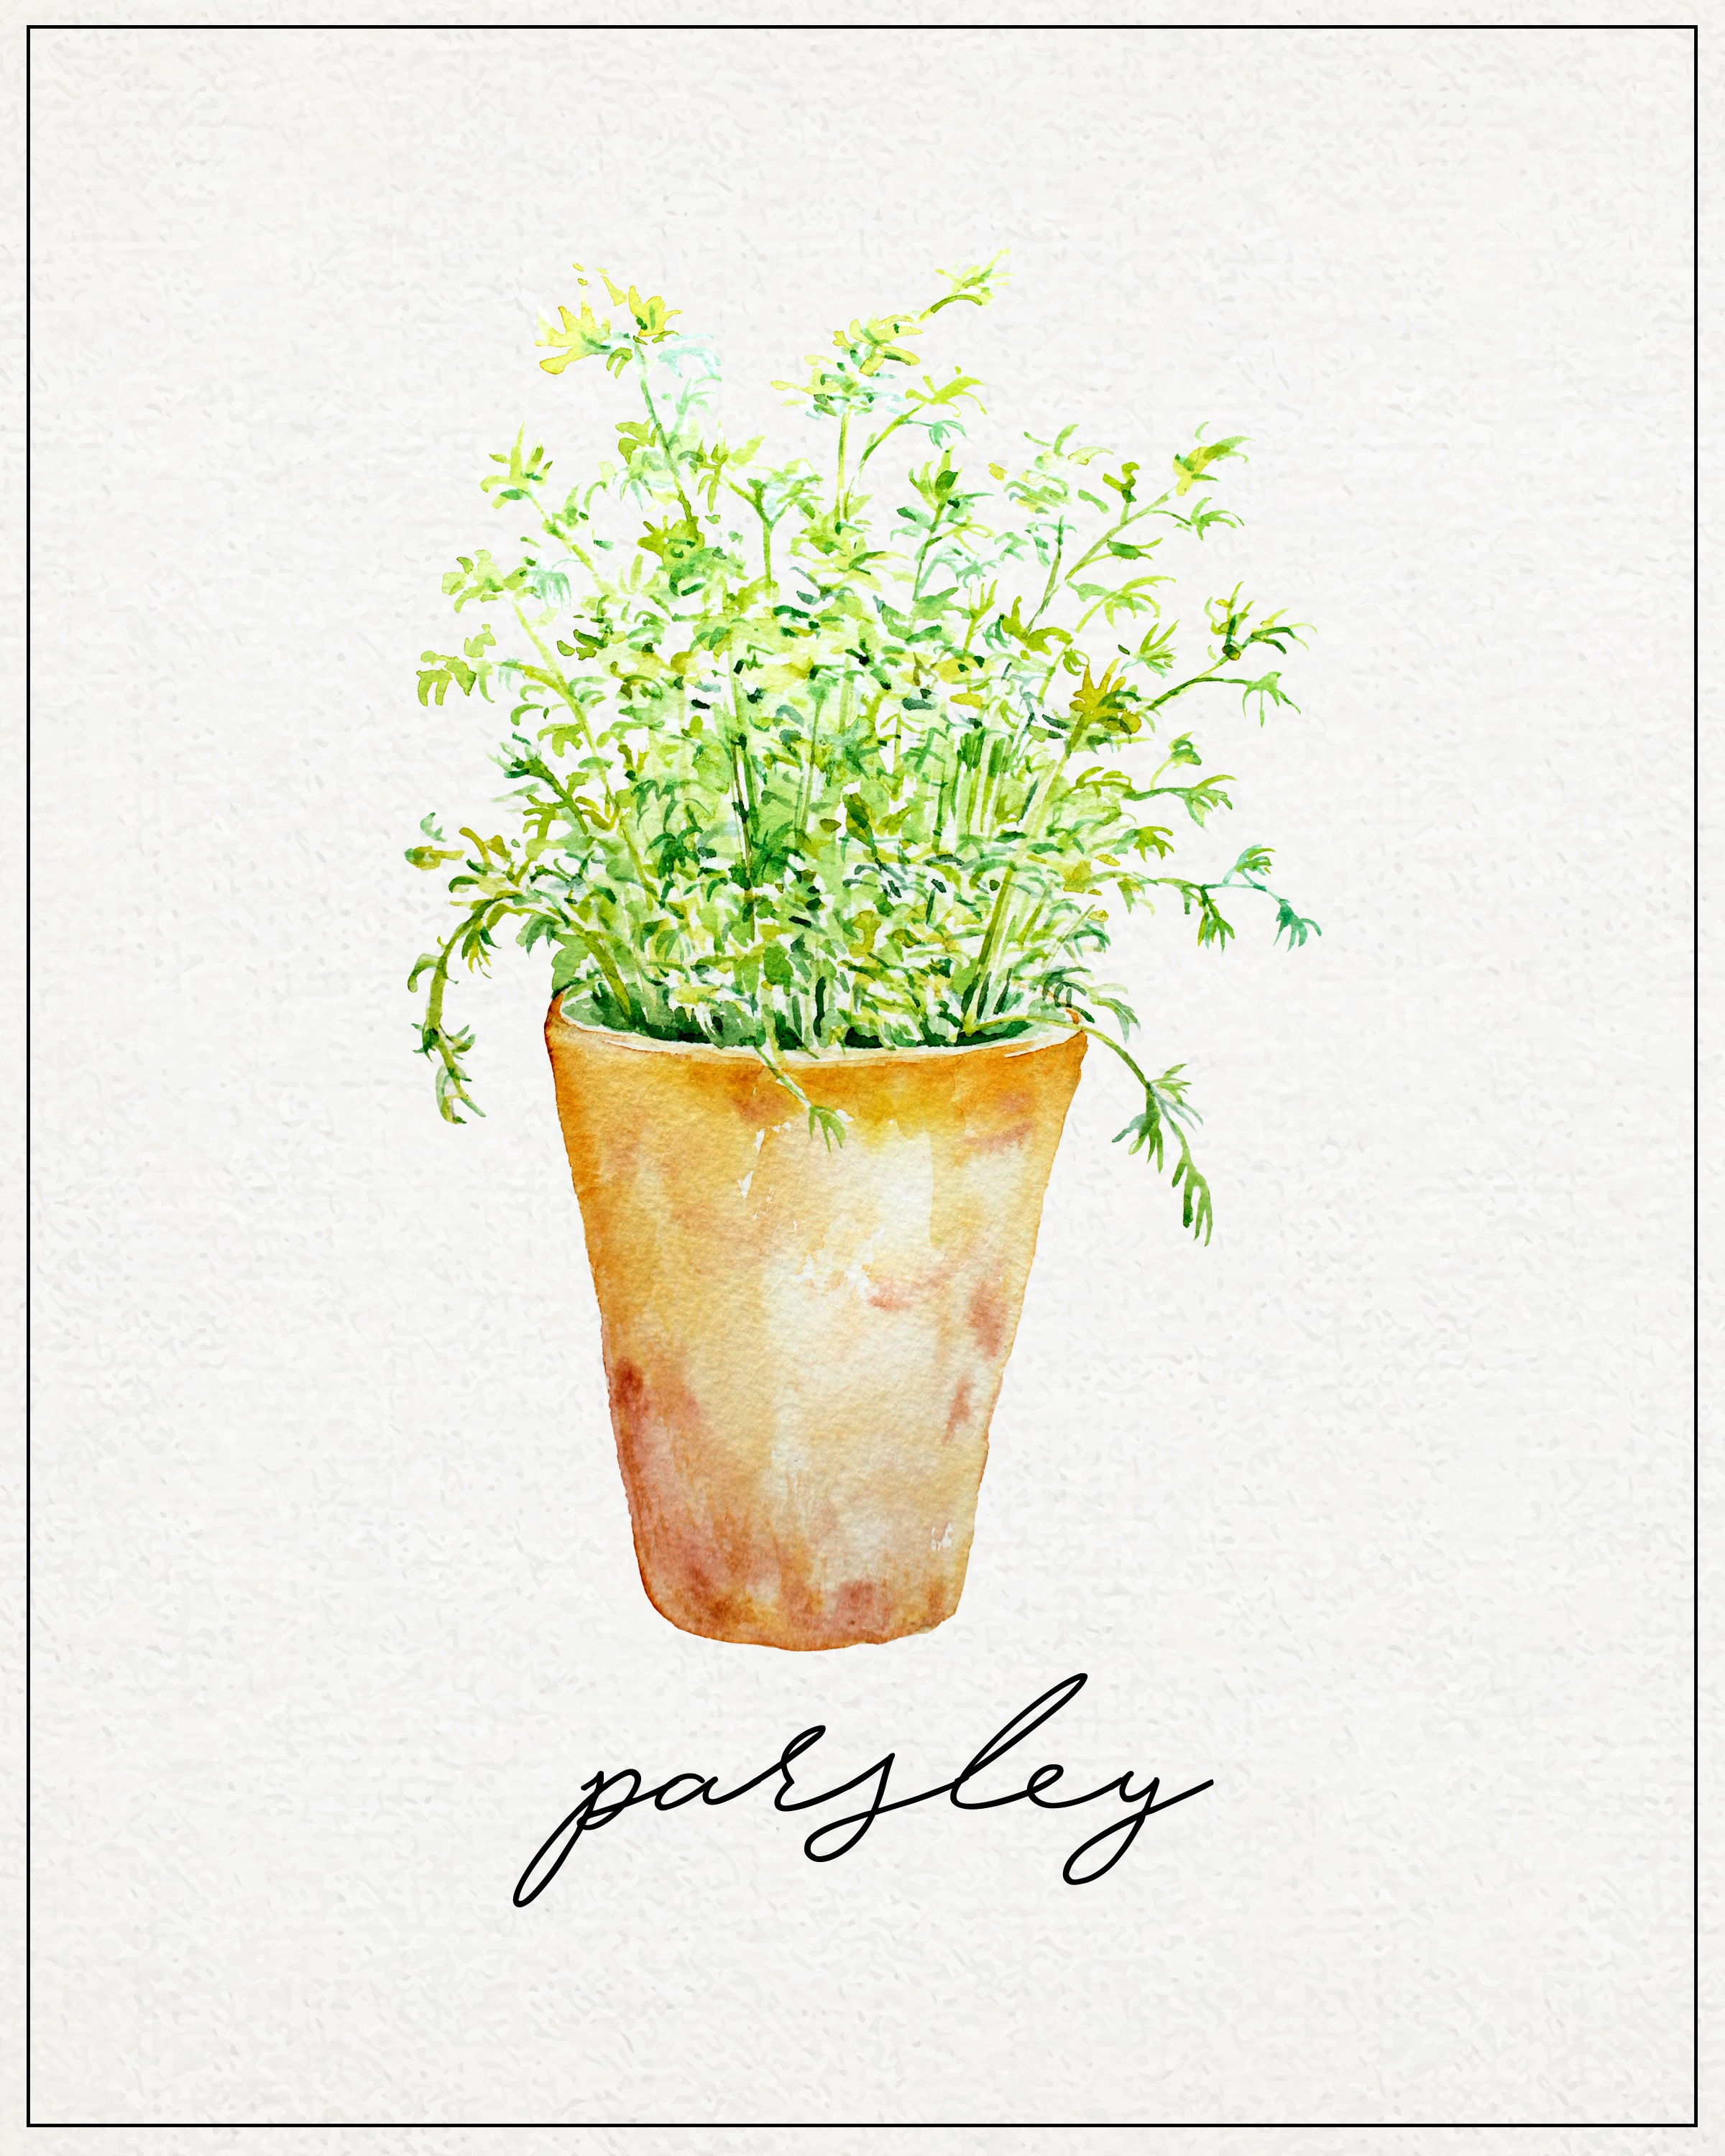 Free Kitchen Herb Wall Art Printables | The Cottage Market - Free Printable Pictures Of Herbs